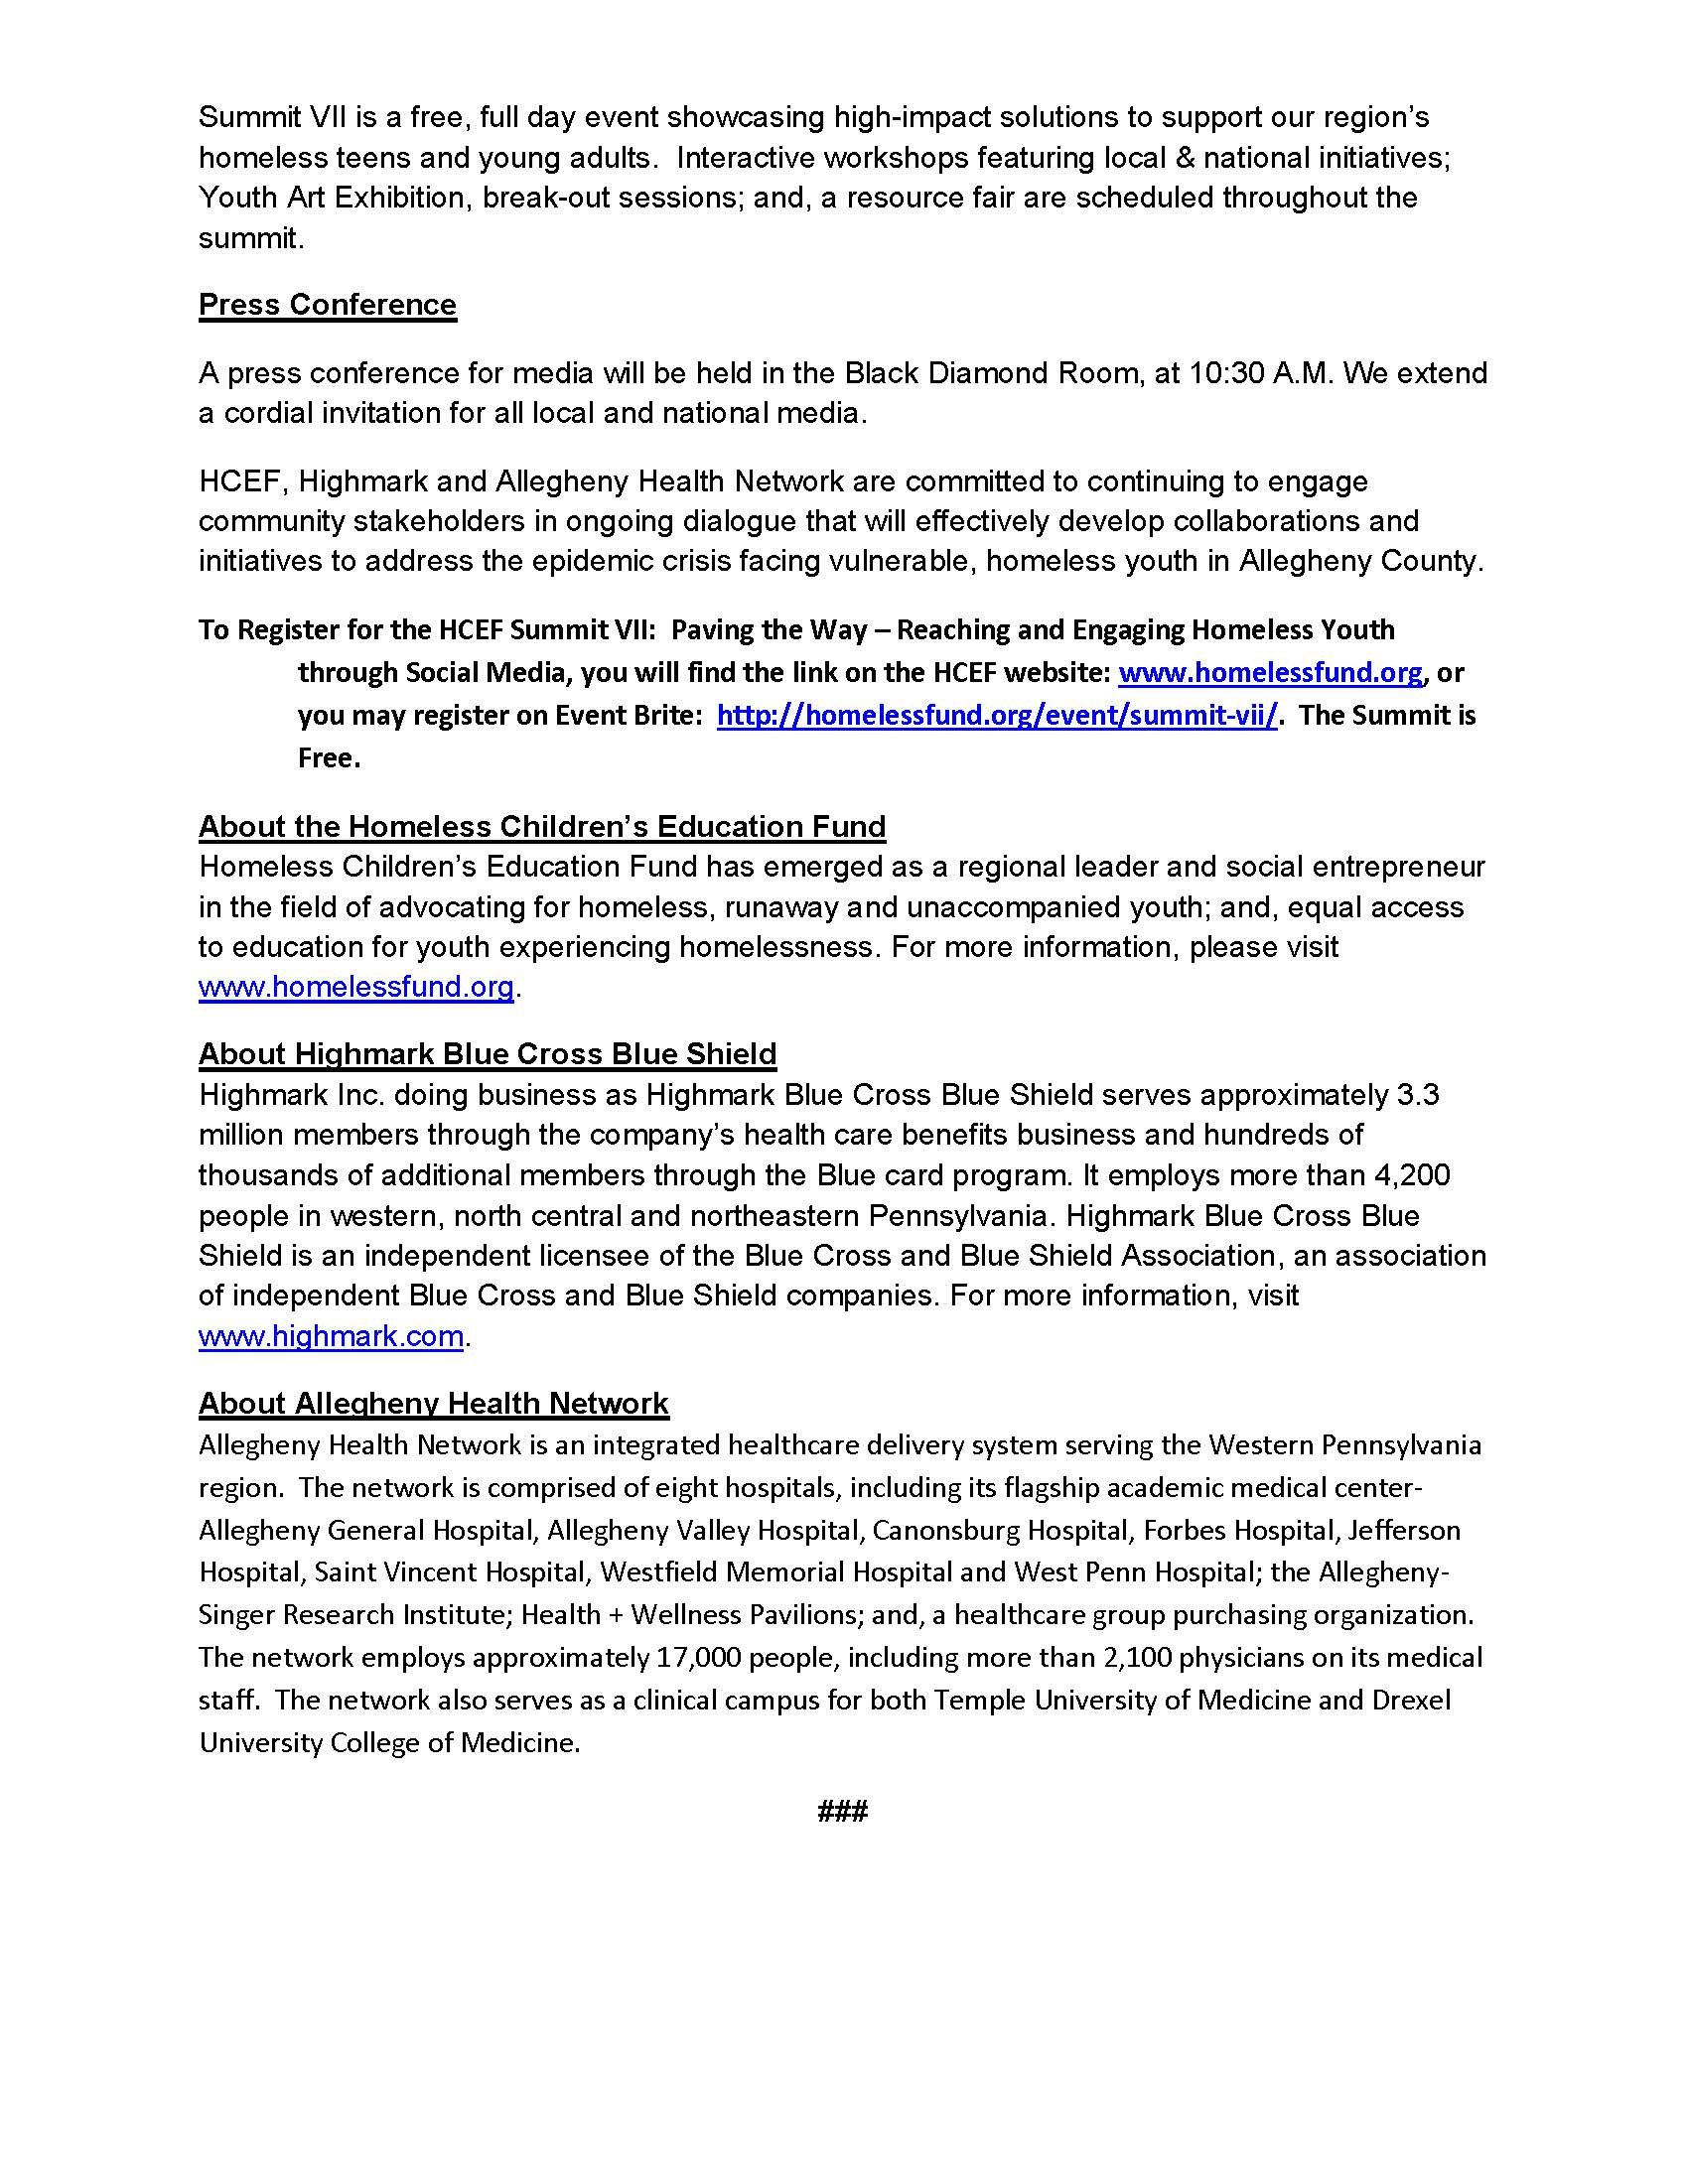 highmark-press-release-summit-vii-final_page_2